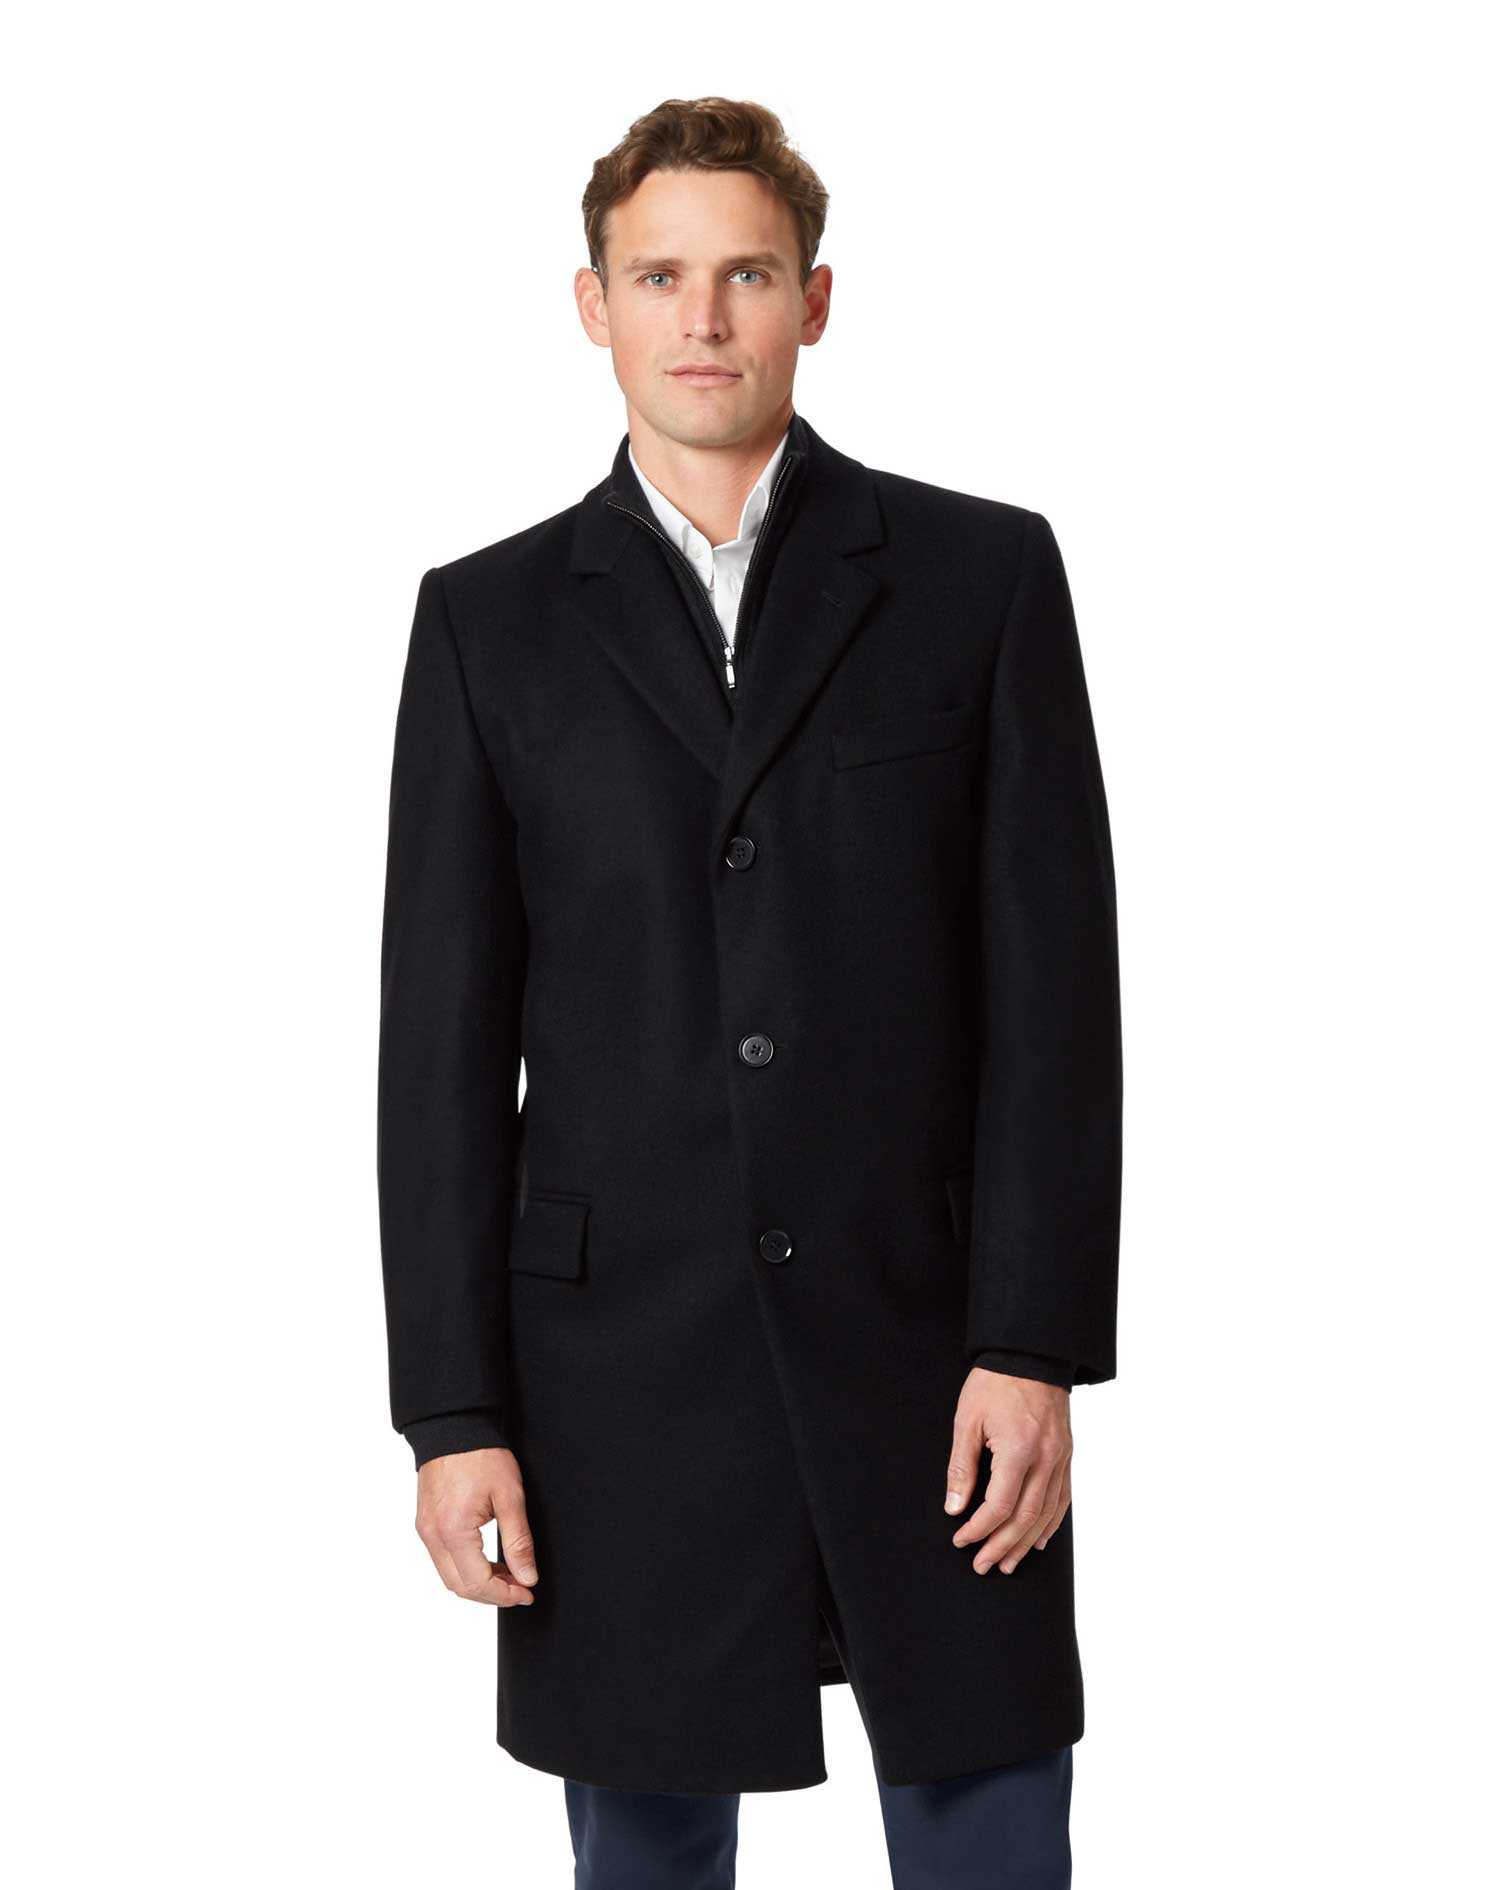 Black Italian Wool and Cashmere Overcoat Size 44 Long by Charles Tyrwhitt